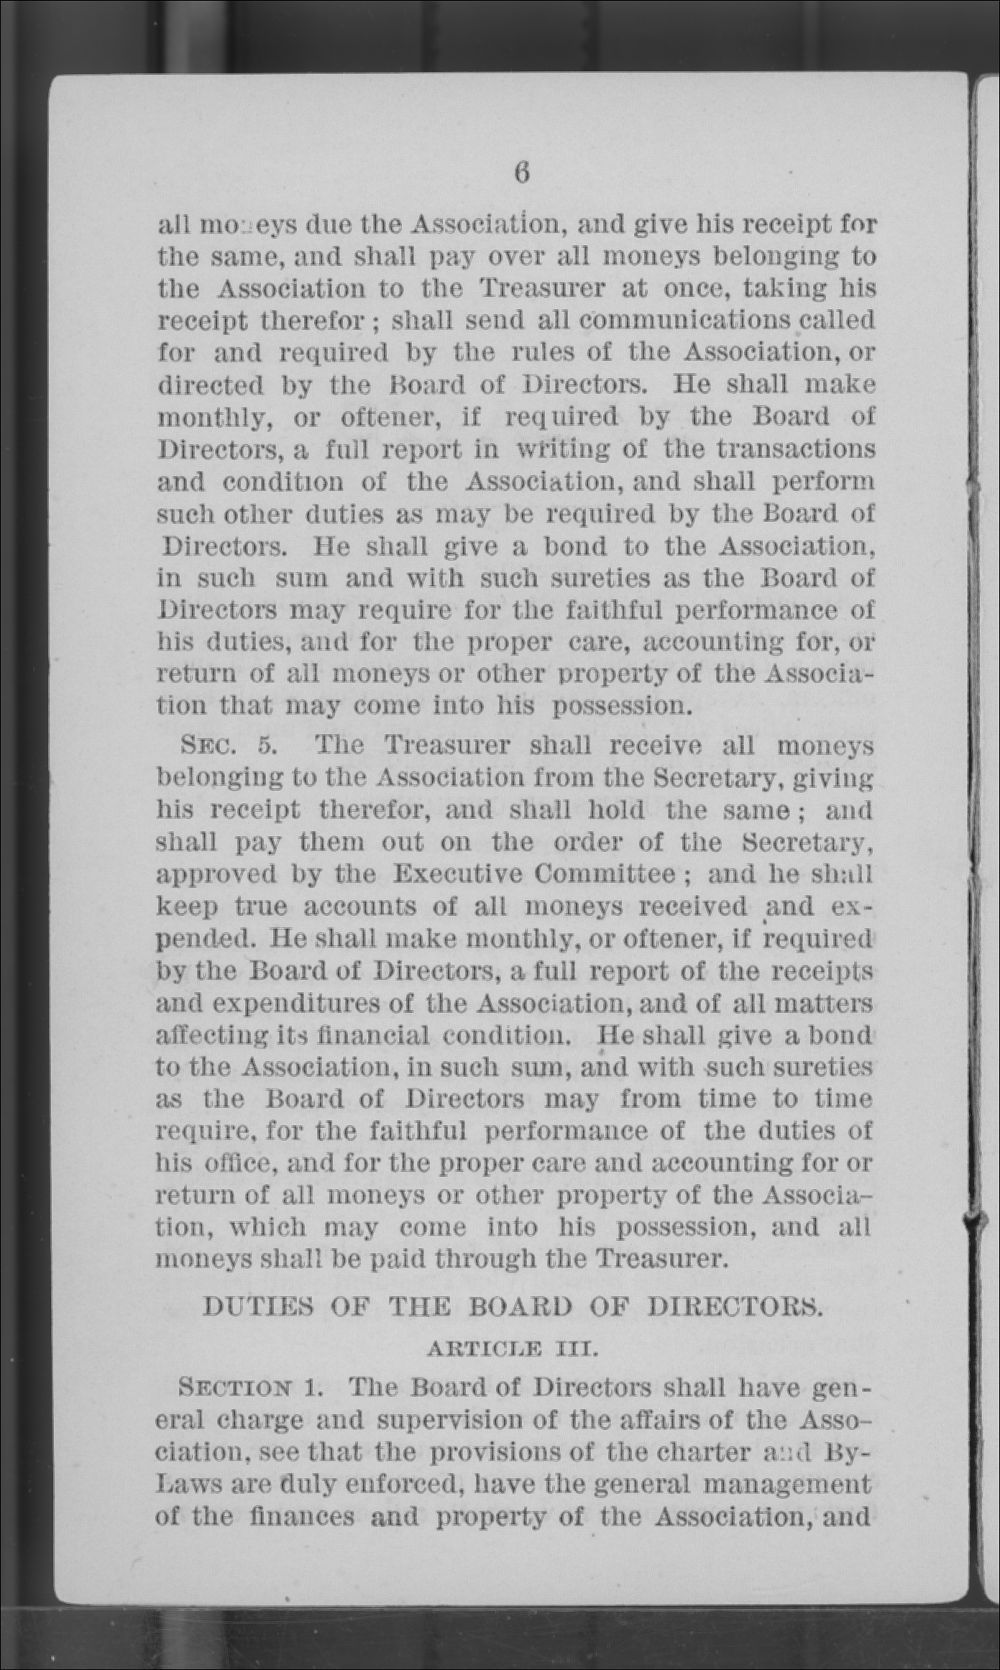 Articles of Corporation and By-Laws of the Kansas Freedmen's Relief Association - 6